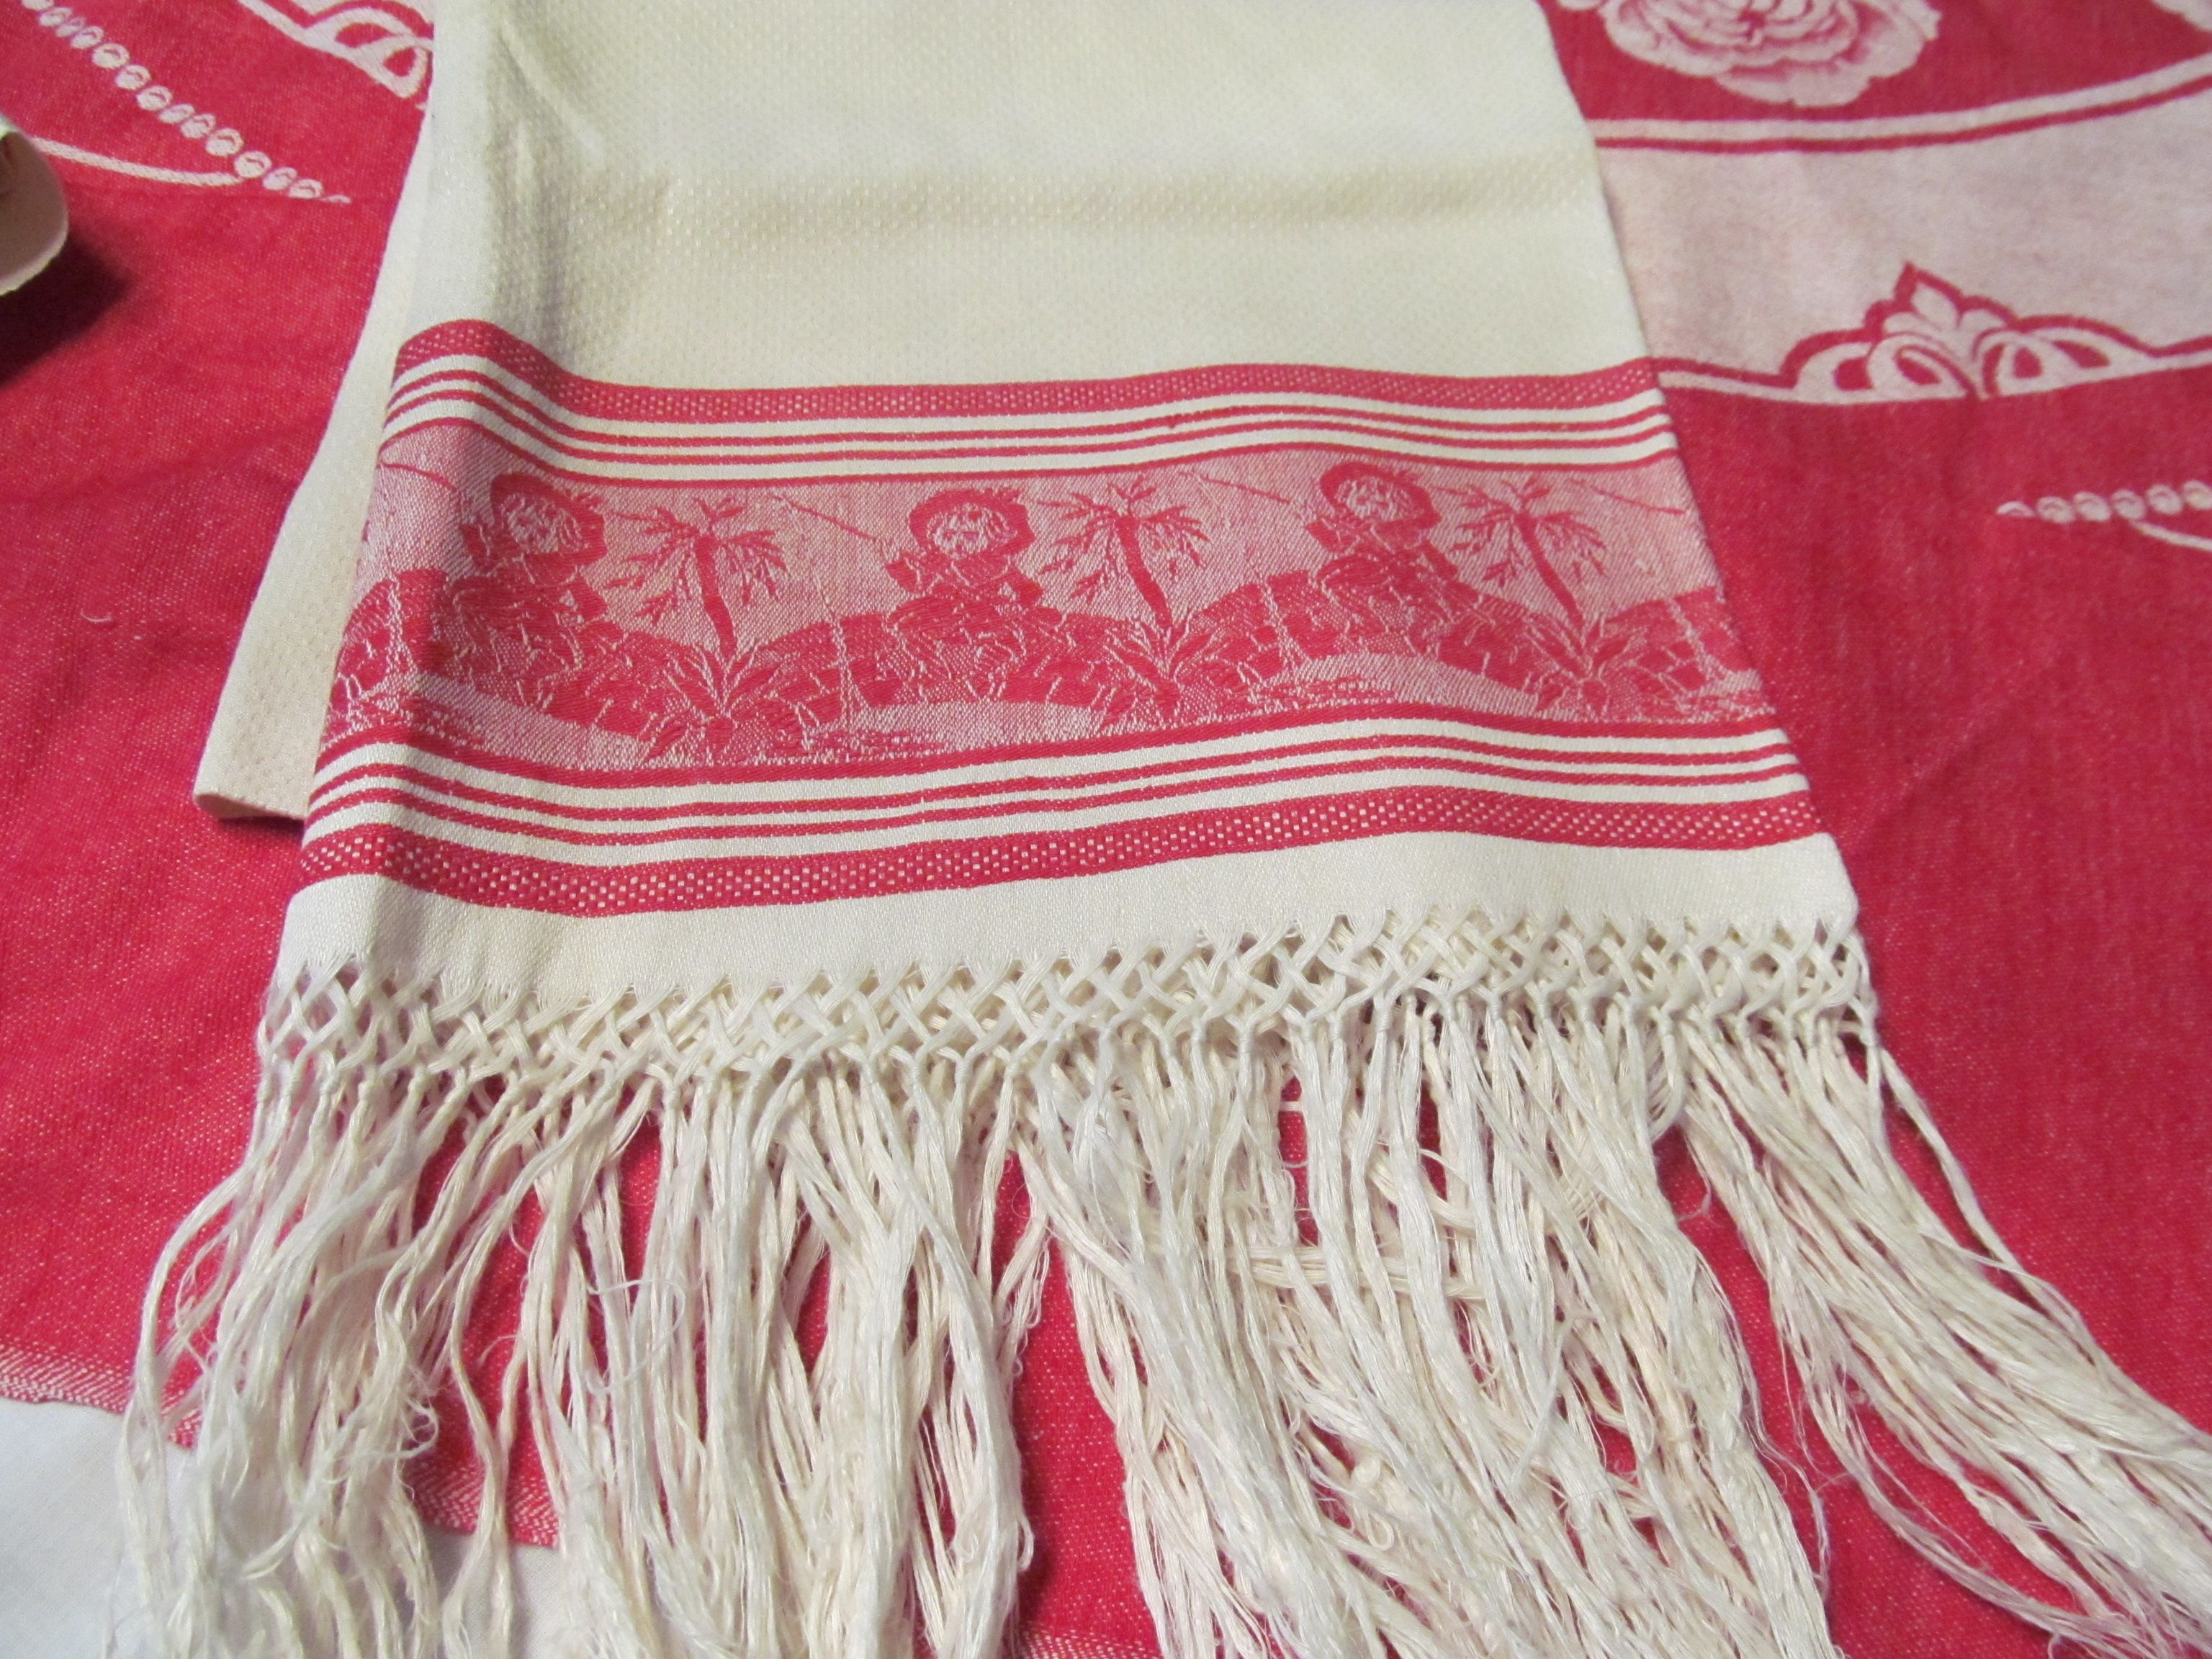 Antique Turkey Red Towel Red Towels Red Damask Red Toile